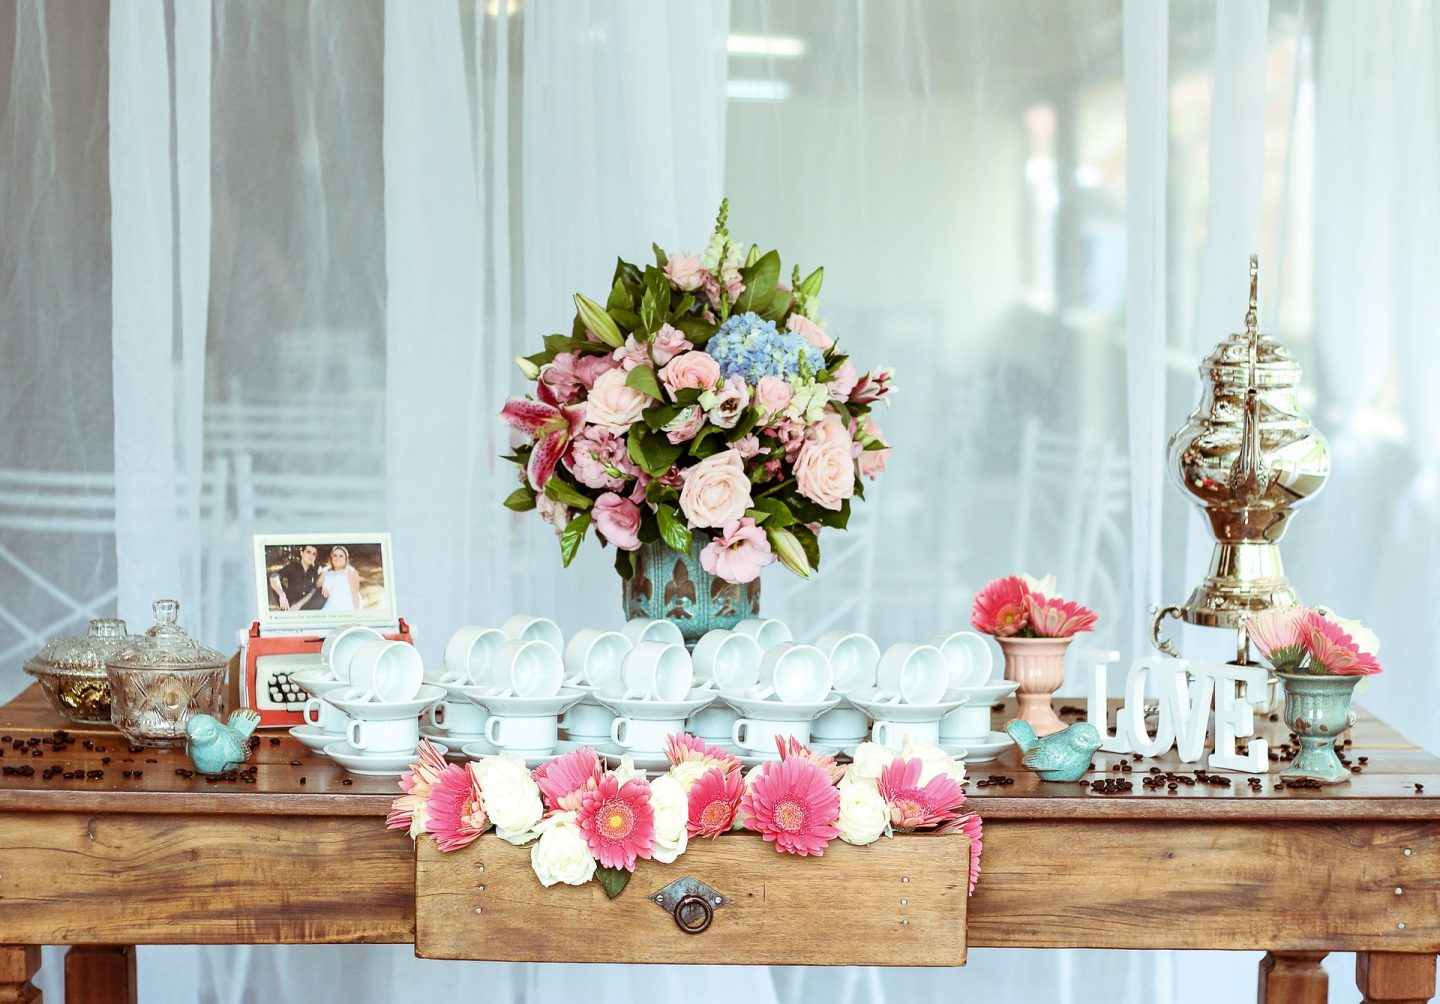 Planning Your Wedding Reception: How To Ensure It Wows!